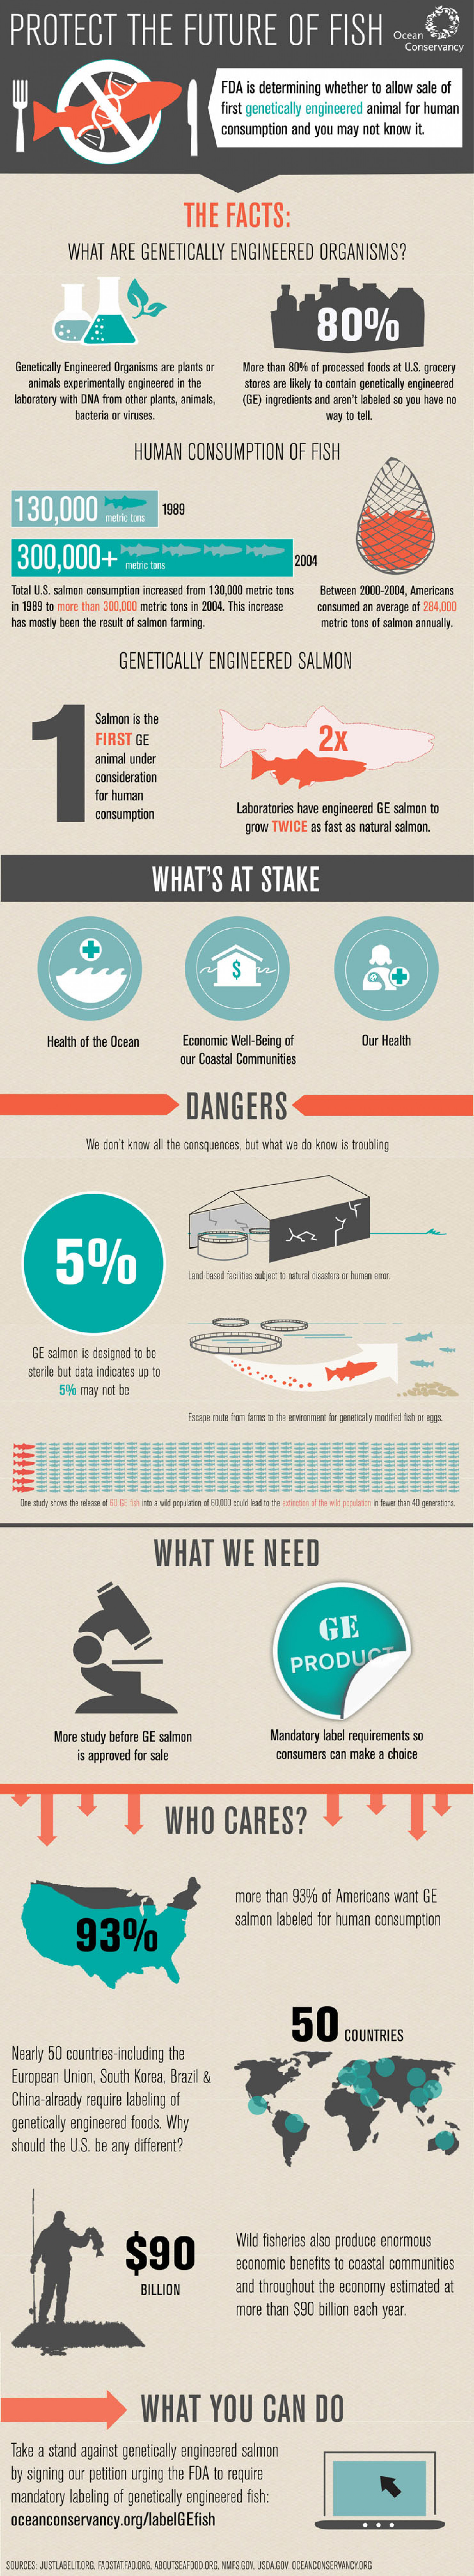 Protect the Future of Fish Infographic